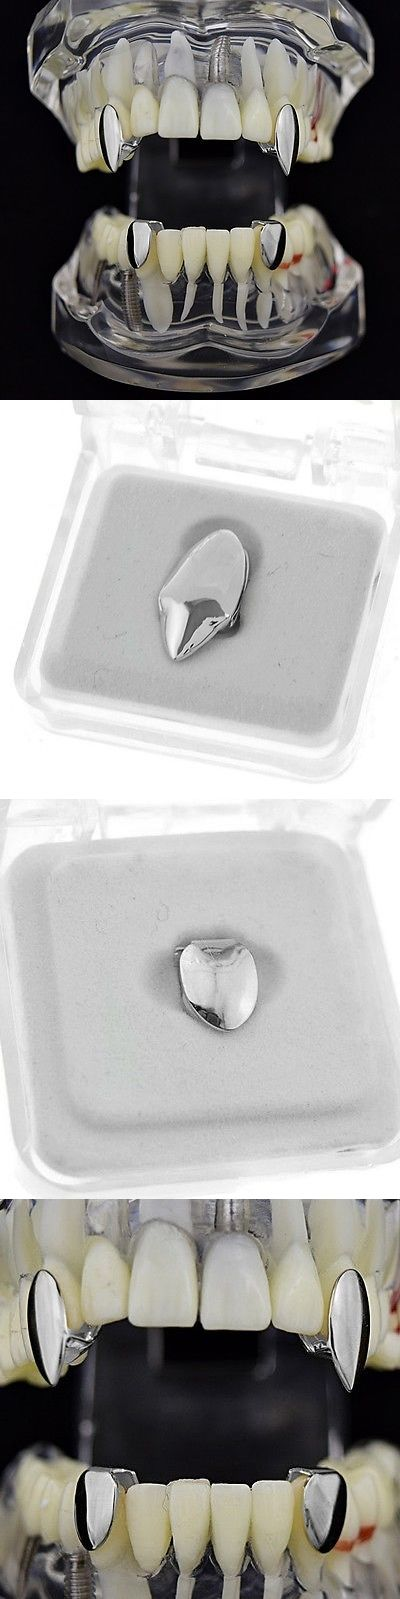 Grillz Dental Grills 152808: Vampire Fang Set Silver Tone 2 Canine K9 Dracula Fangs And Two Bottom Teeth Caps BUY IT NOW ONLY: $39.95